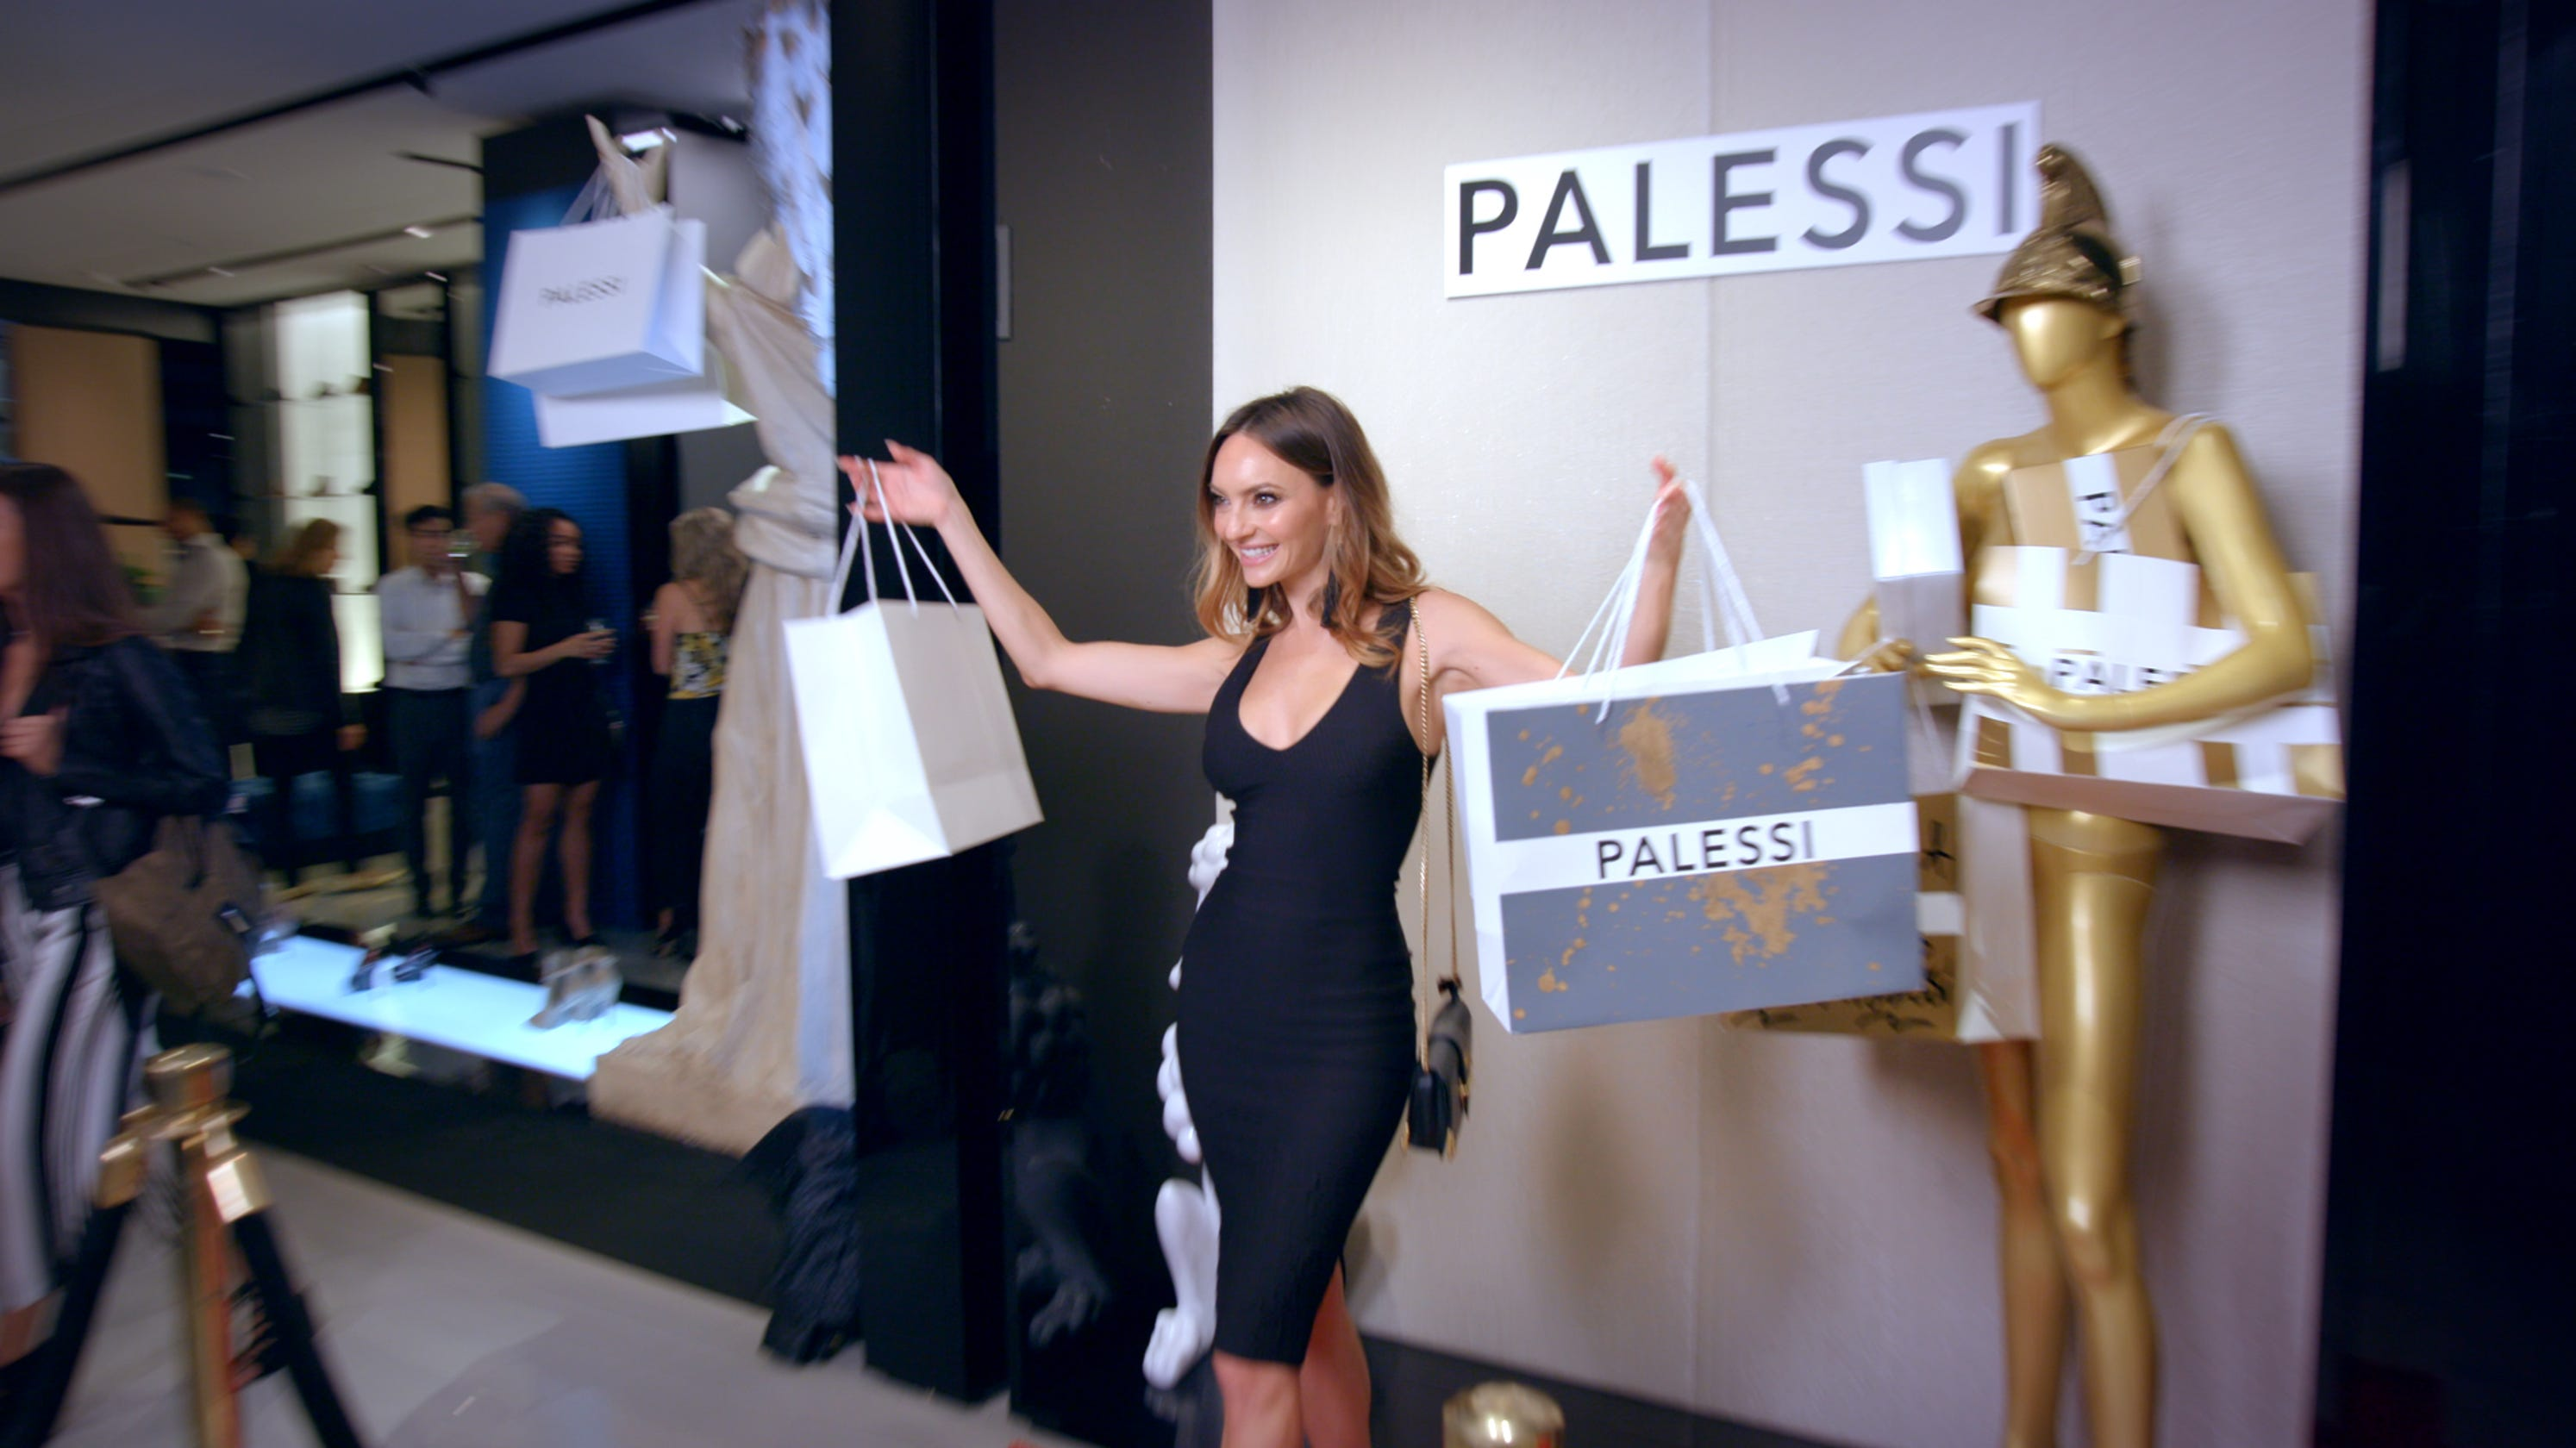 f5980ef3572 Payless marked up discount shoes to $600 at luxury event 'Palessi'